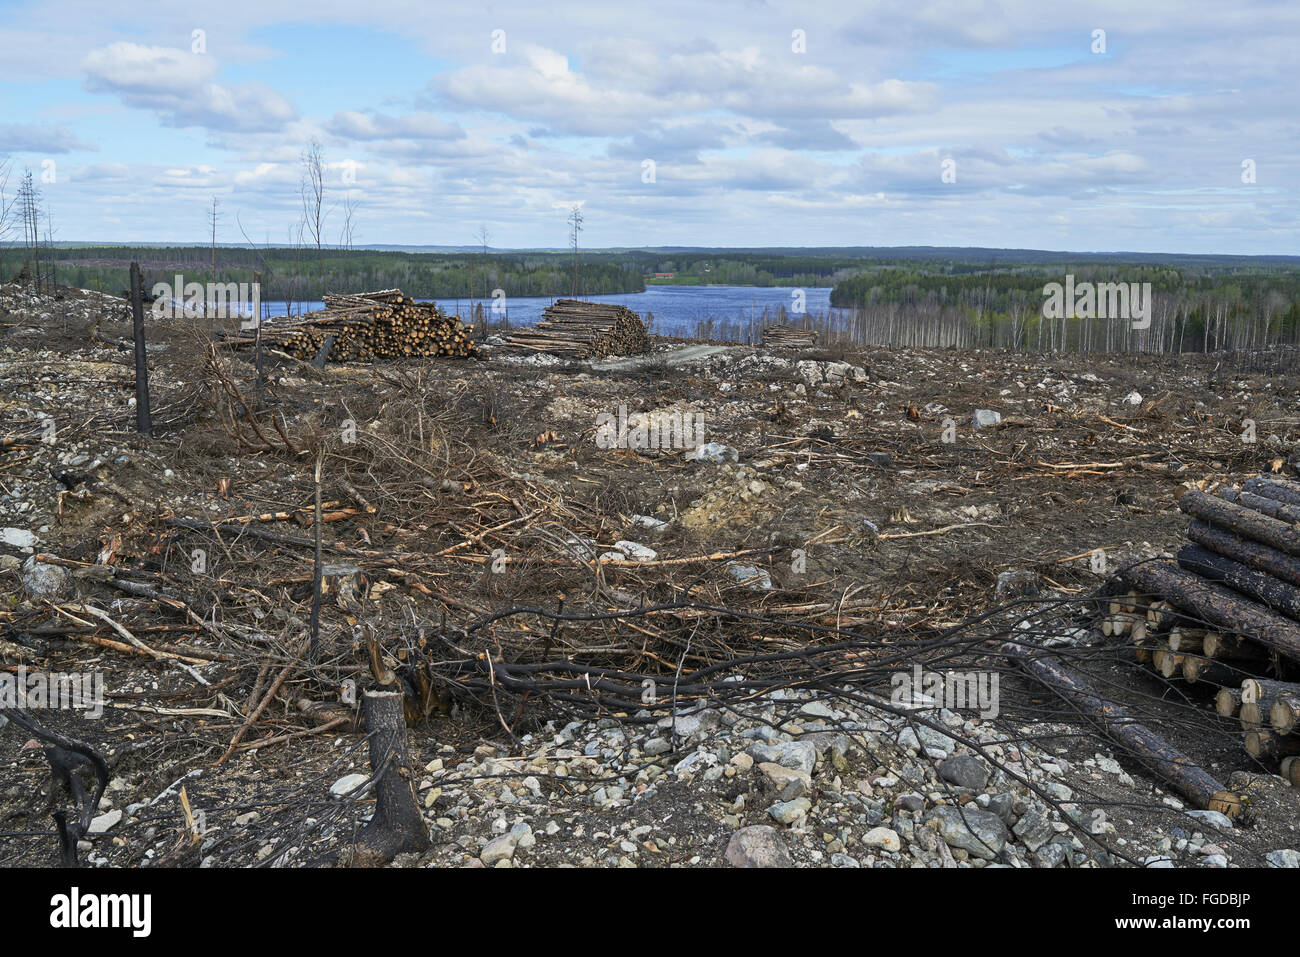 Aftermath of fire in coniferous forest, near Angelsberg, Fagersta Municipality, Vastmanland, Sweden, May - Stock Image